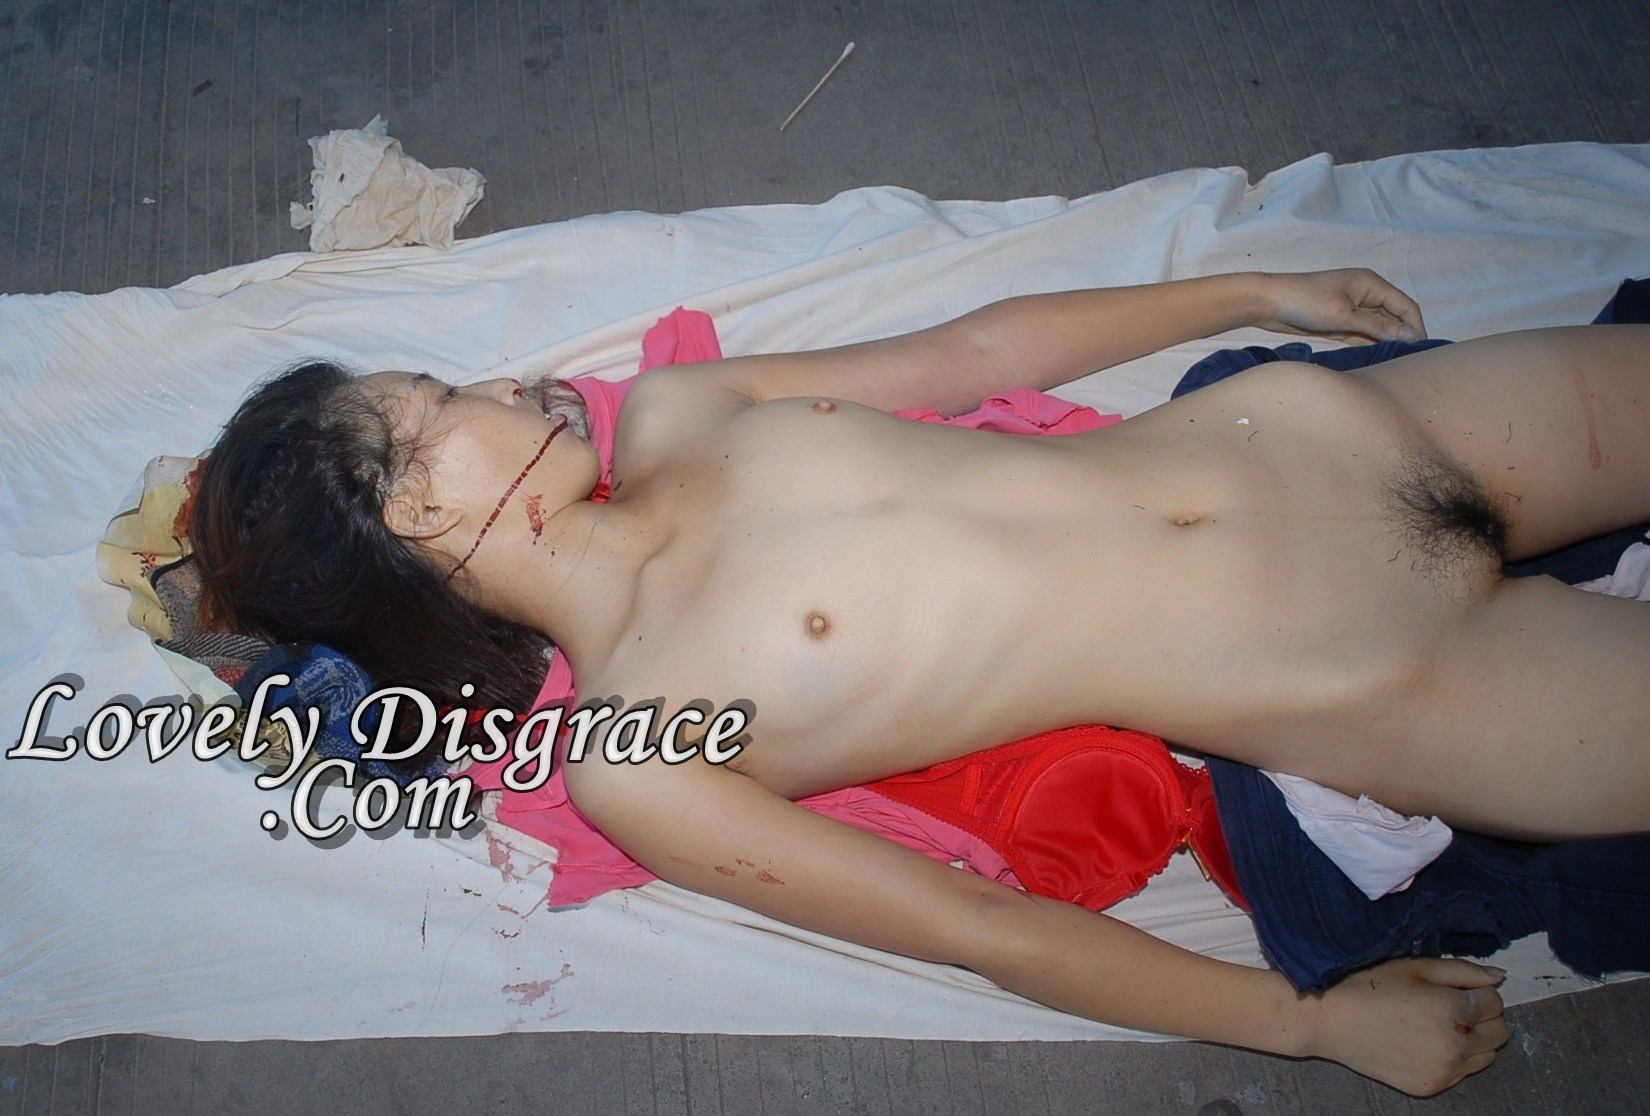 Remarkable, dead girl nude sex suggest